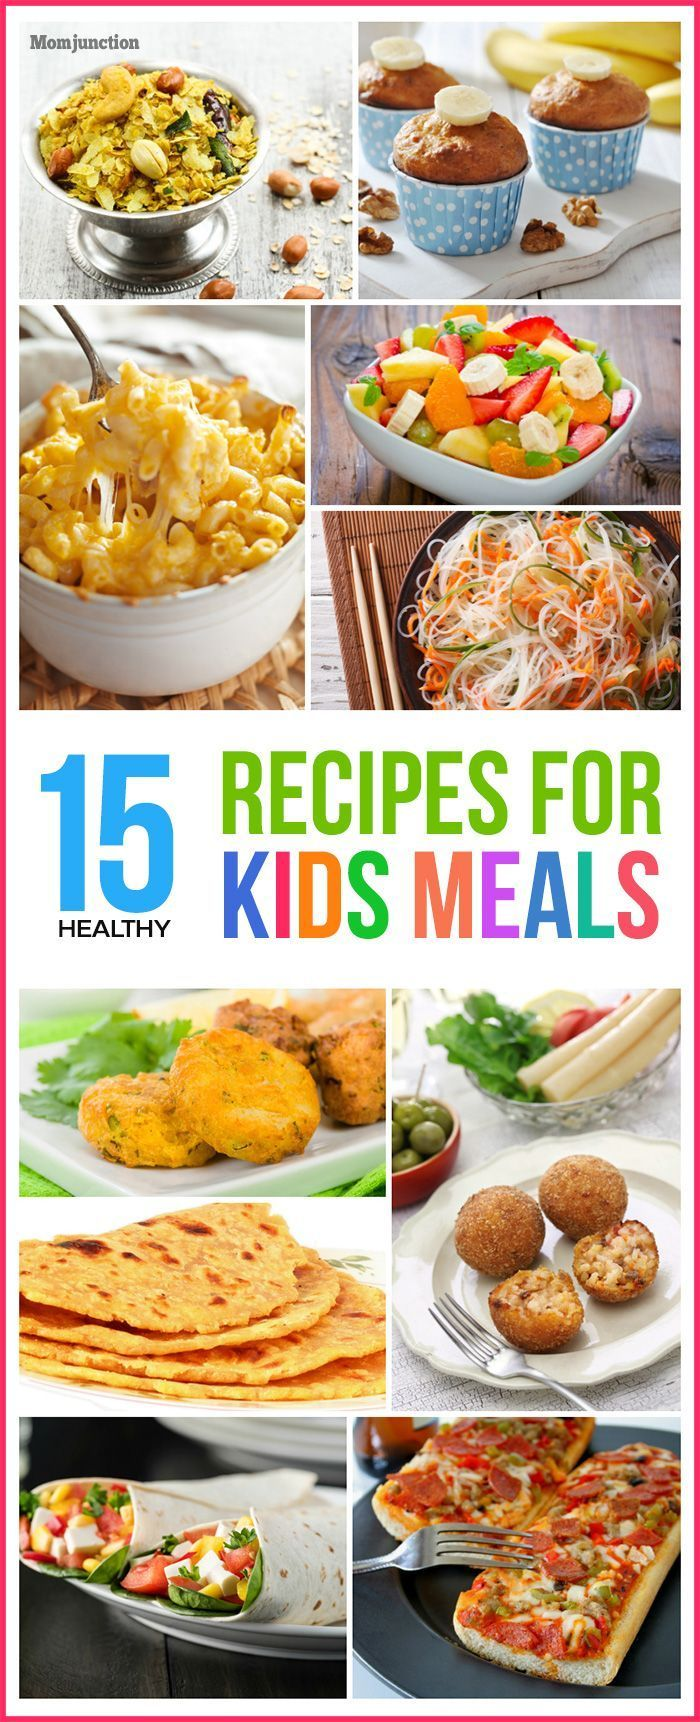 top 15 healthy recipes for kids' meals | recipes | kids meals